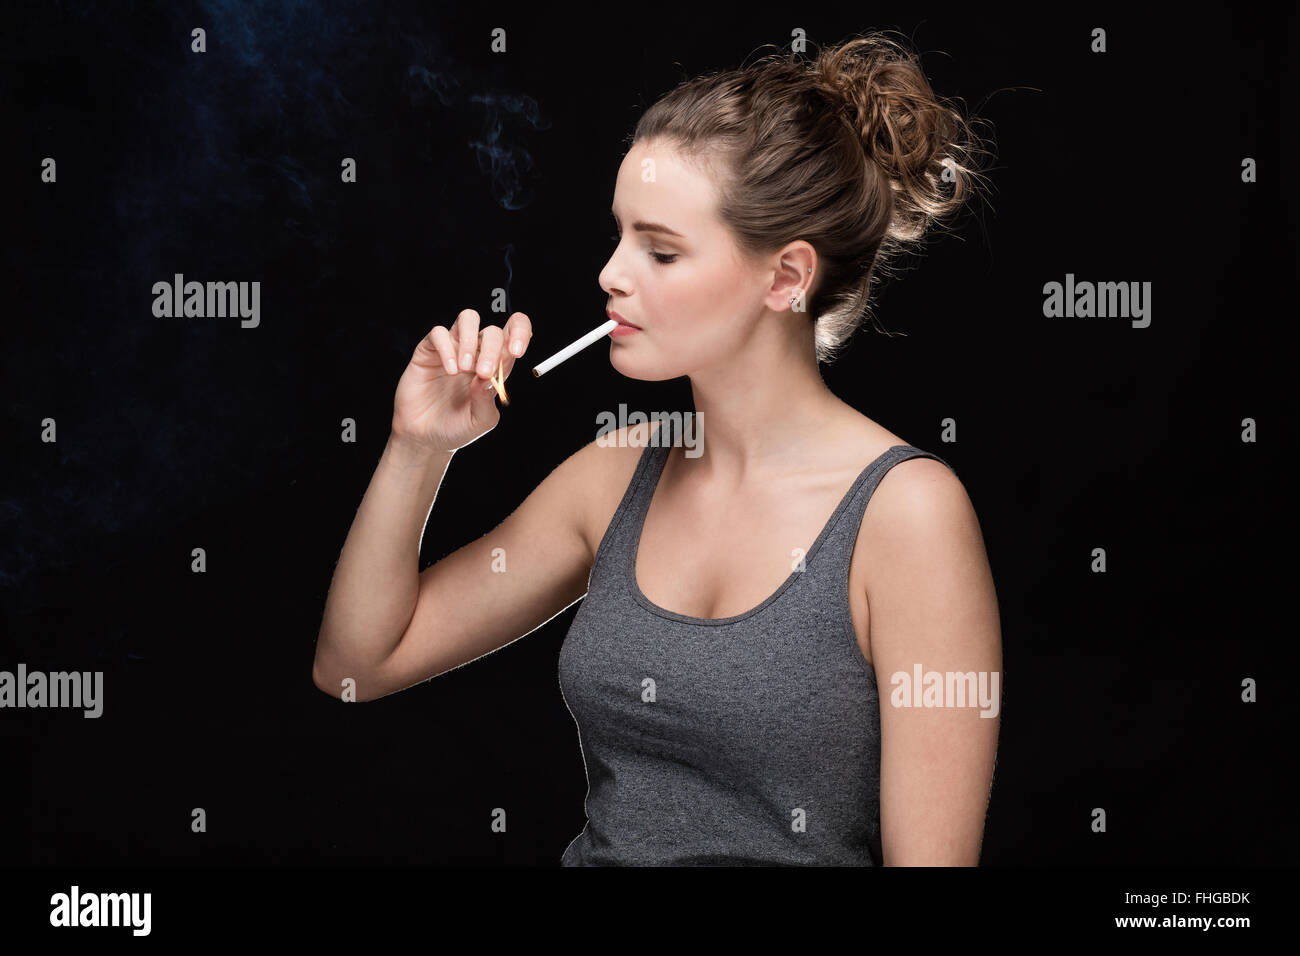 young woman with cigarette, smoking concept on black background - Stock Image